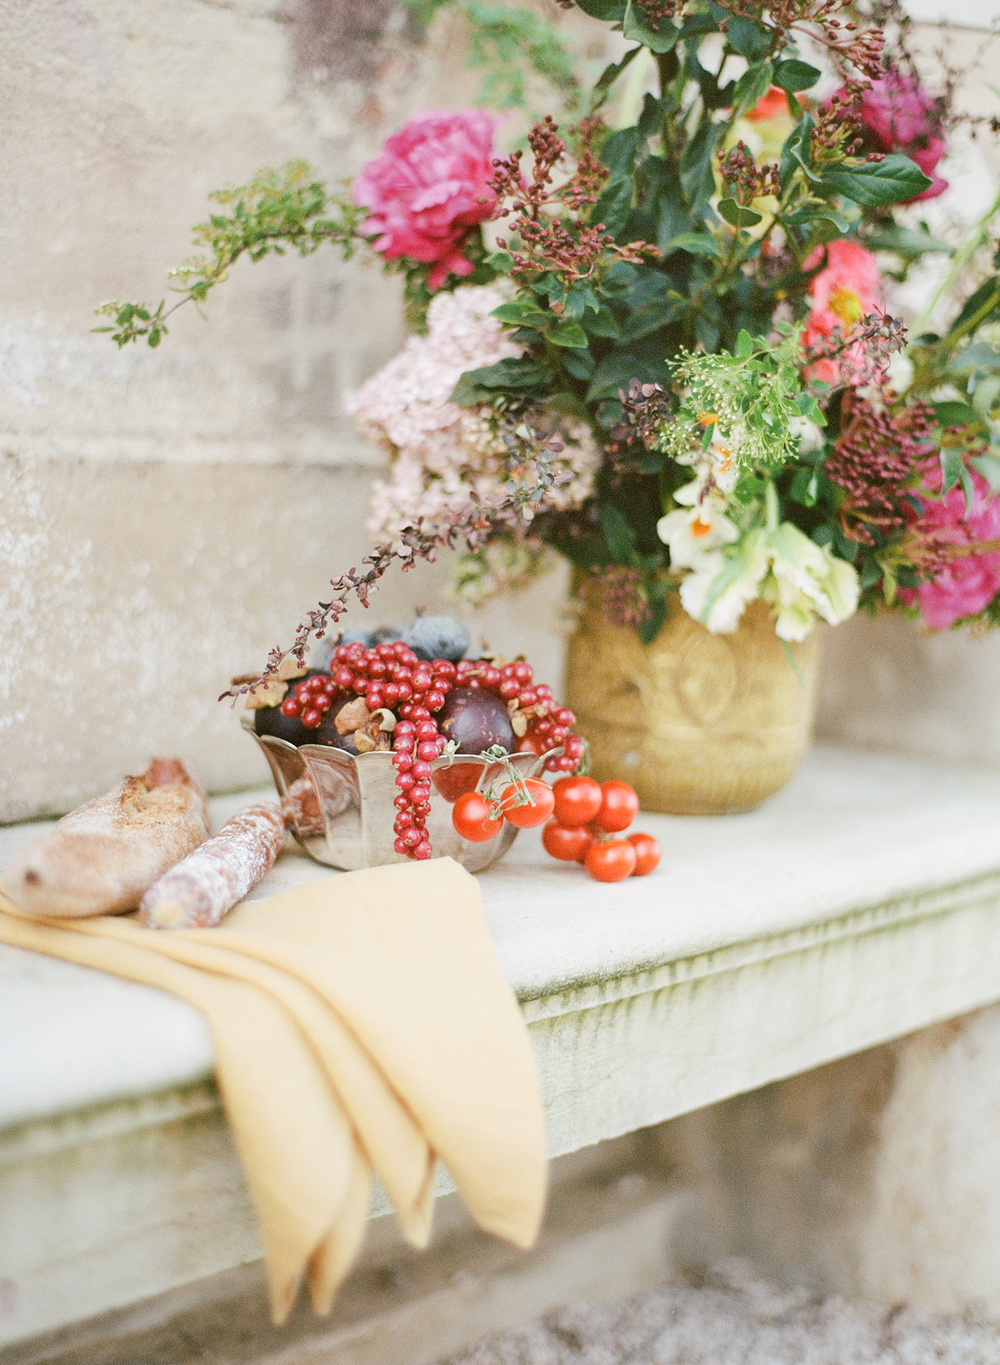 Charcuterie, a baguette, a bowl of fruit, and some lovely rustic florals make for a beautifully style detail shot from the 2016 Workshop in Burgundy; photo by Sylvie Gil